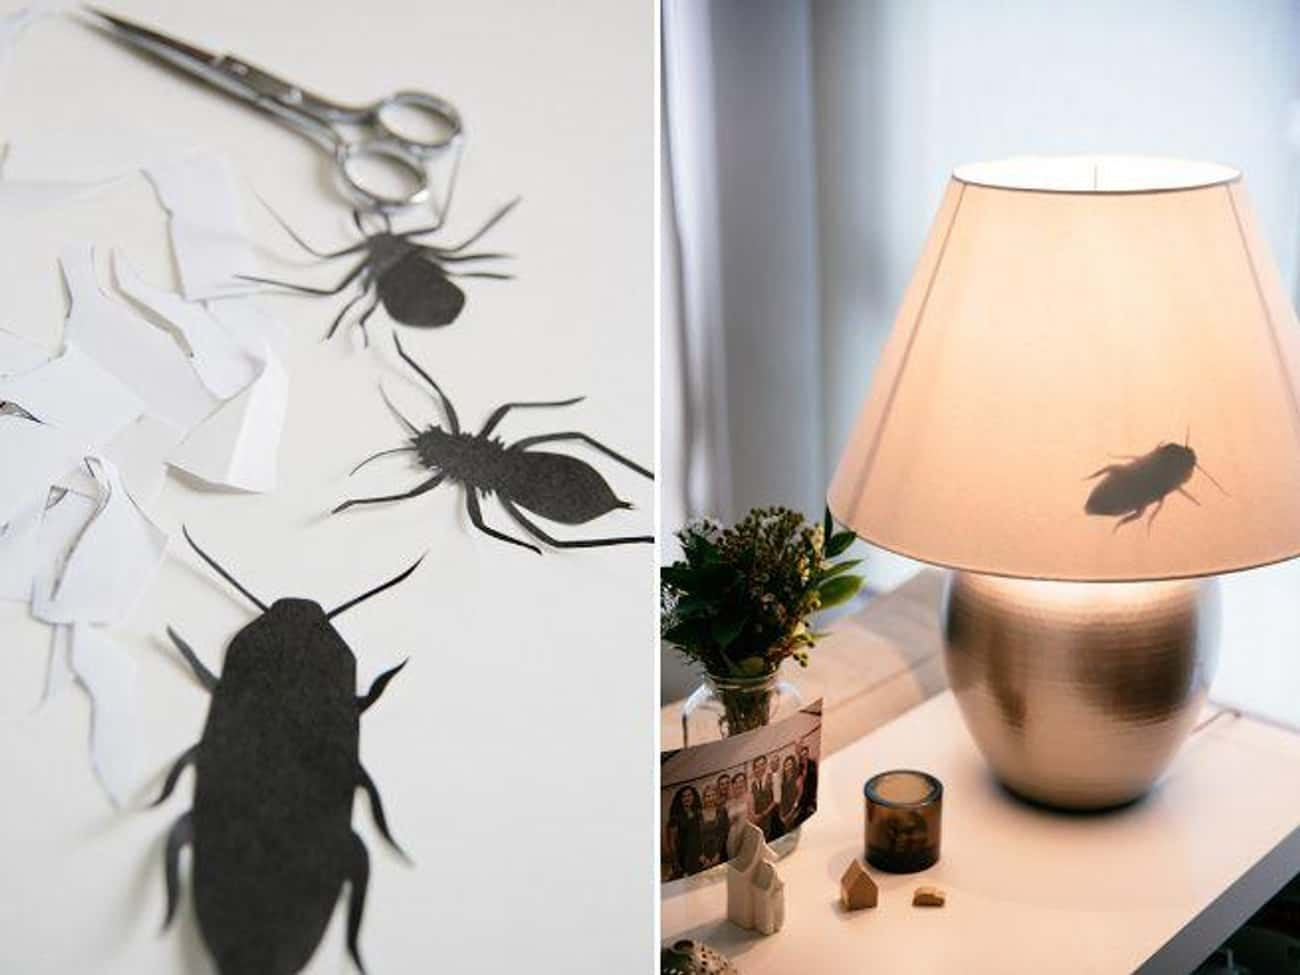 Stick Some Roach Silhouettes i is listed (or ranked) 4 on the list MORE Funny Pranks To Try On Your Friends